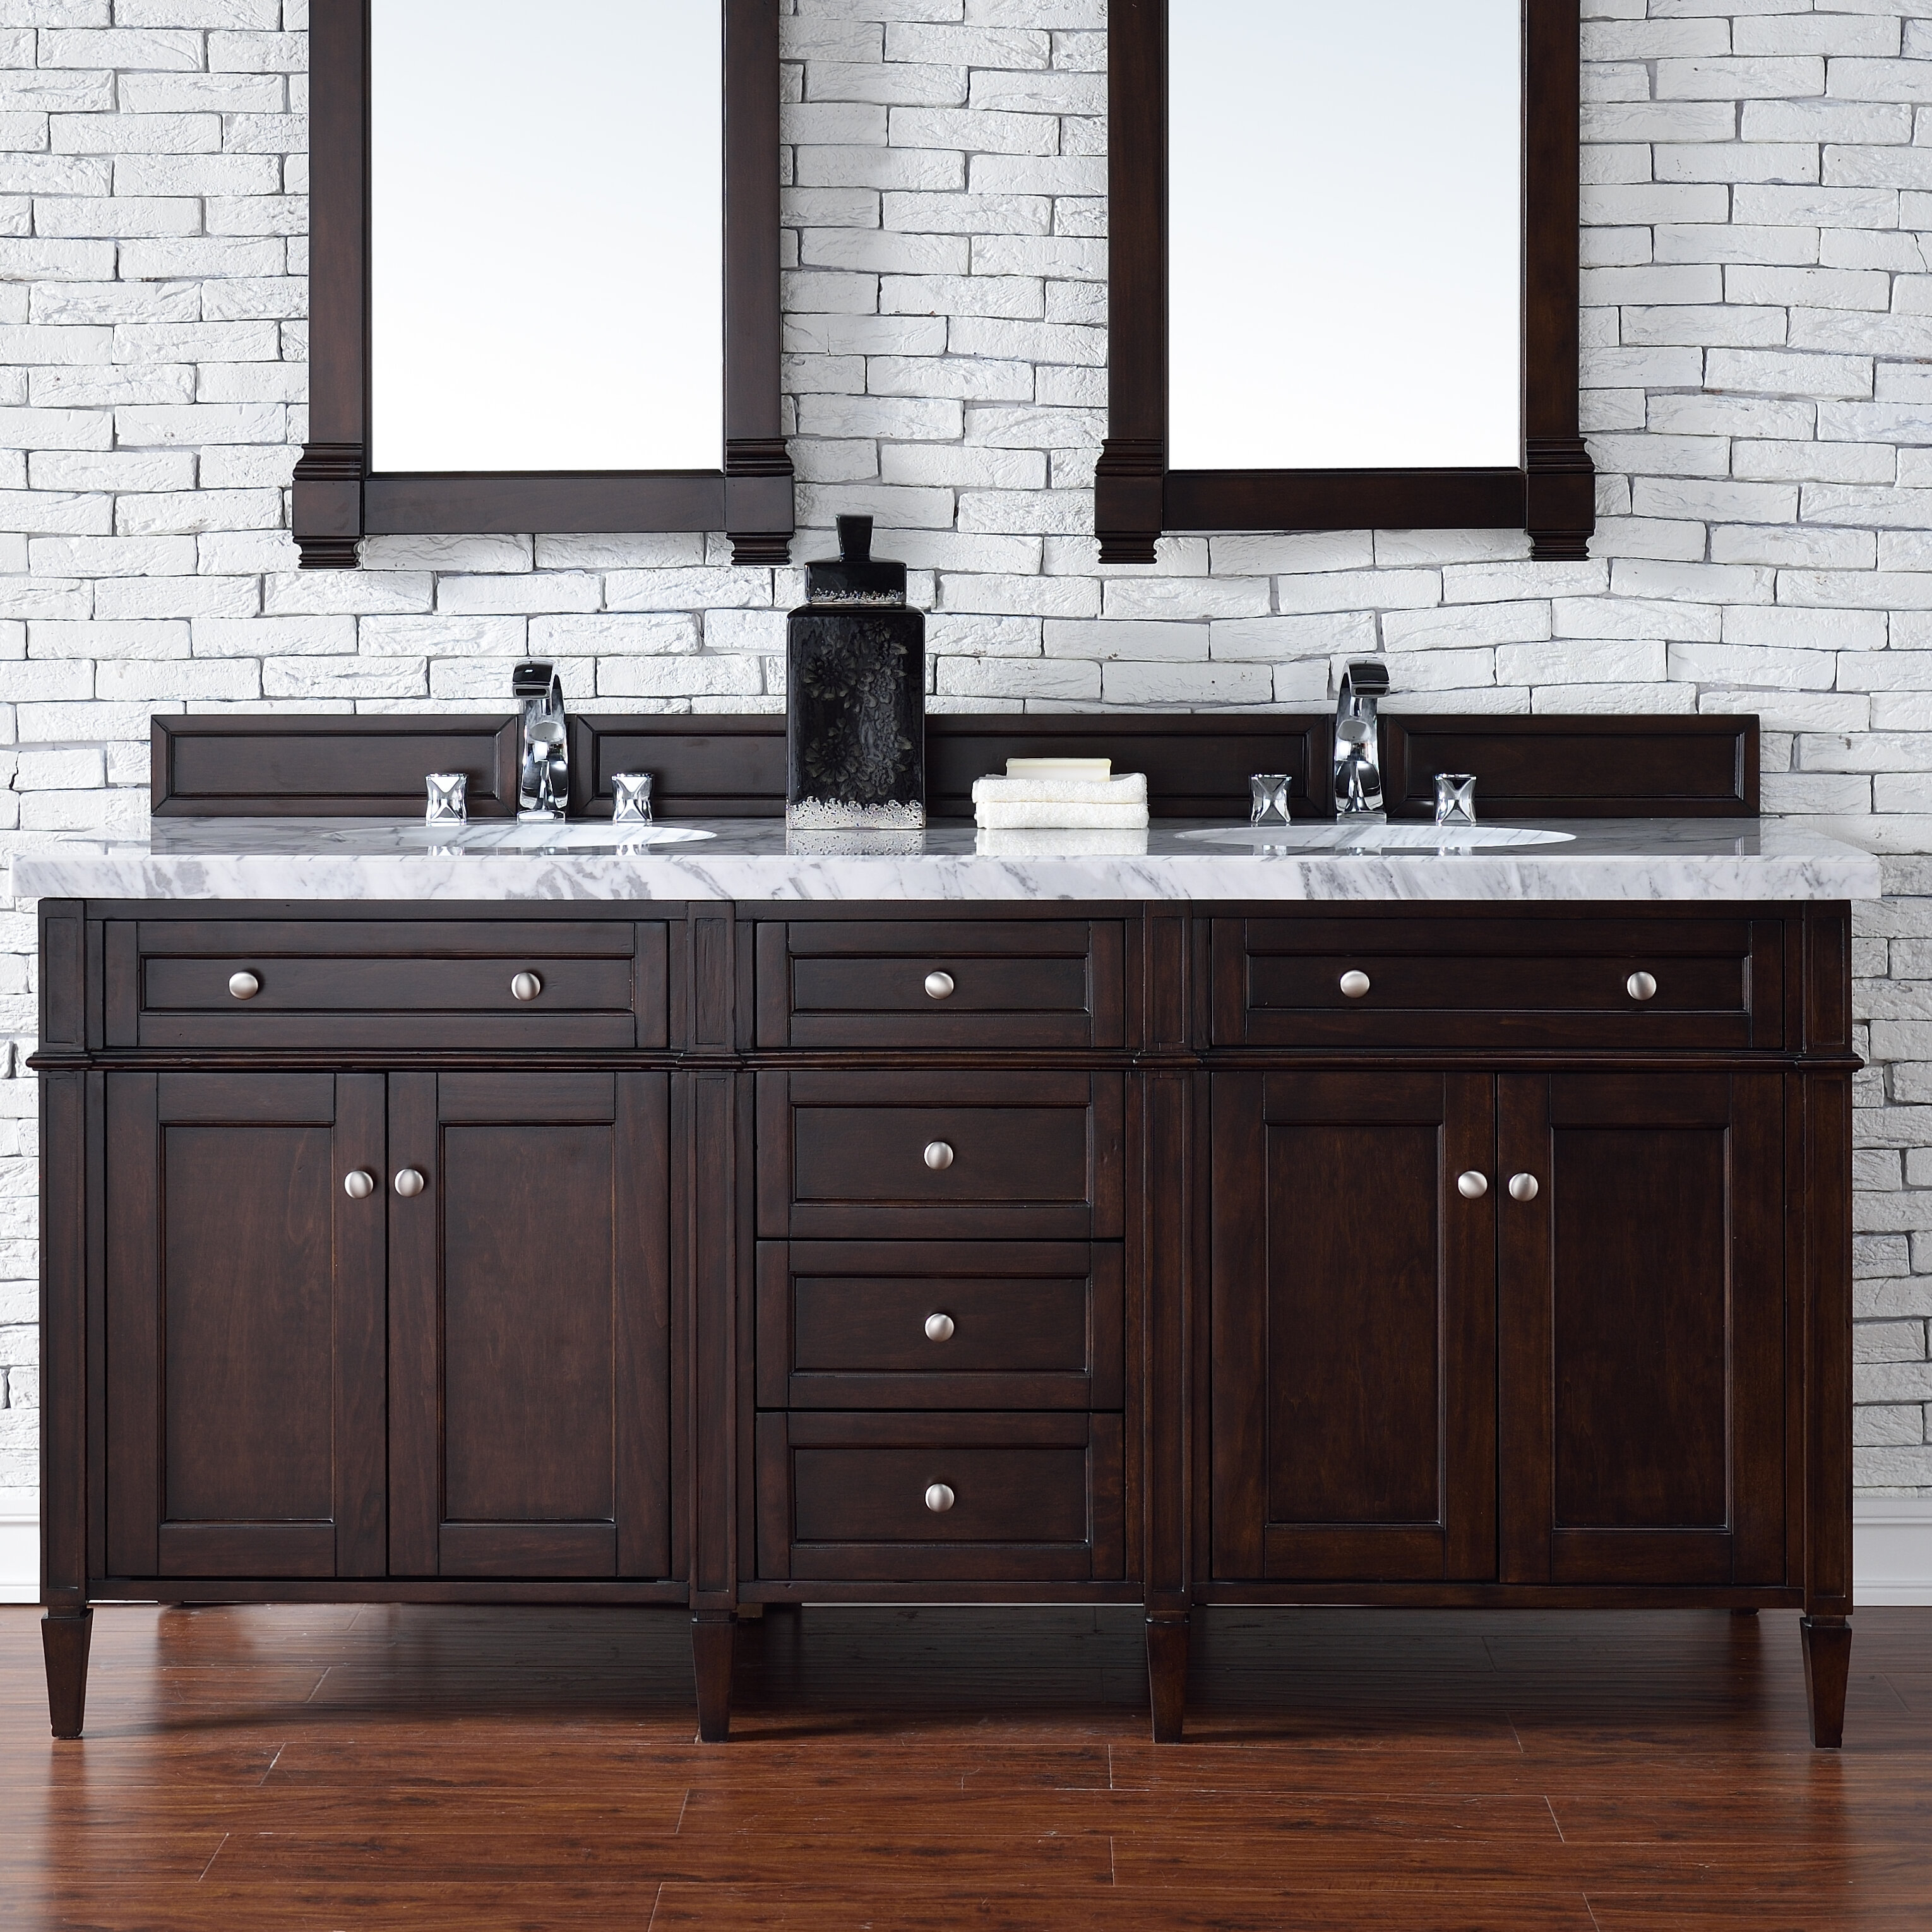 Darby Home Co Deleon 72 Double Burnished Mahogany Free Standing Bathroom Vanity Set Wayfair